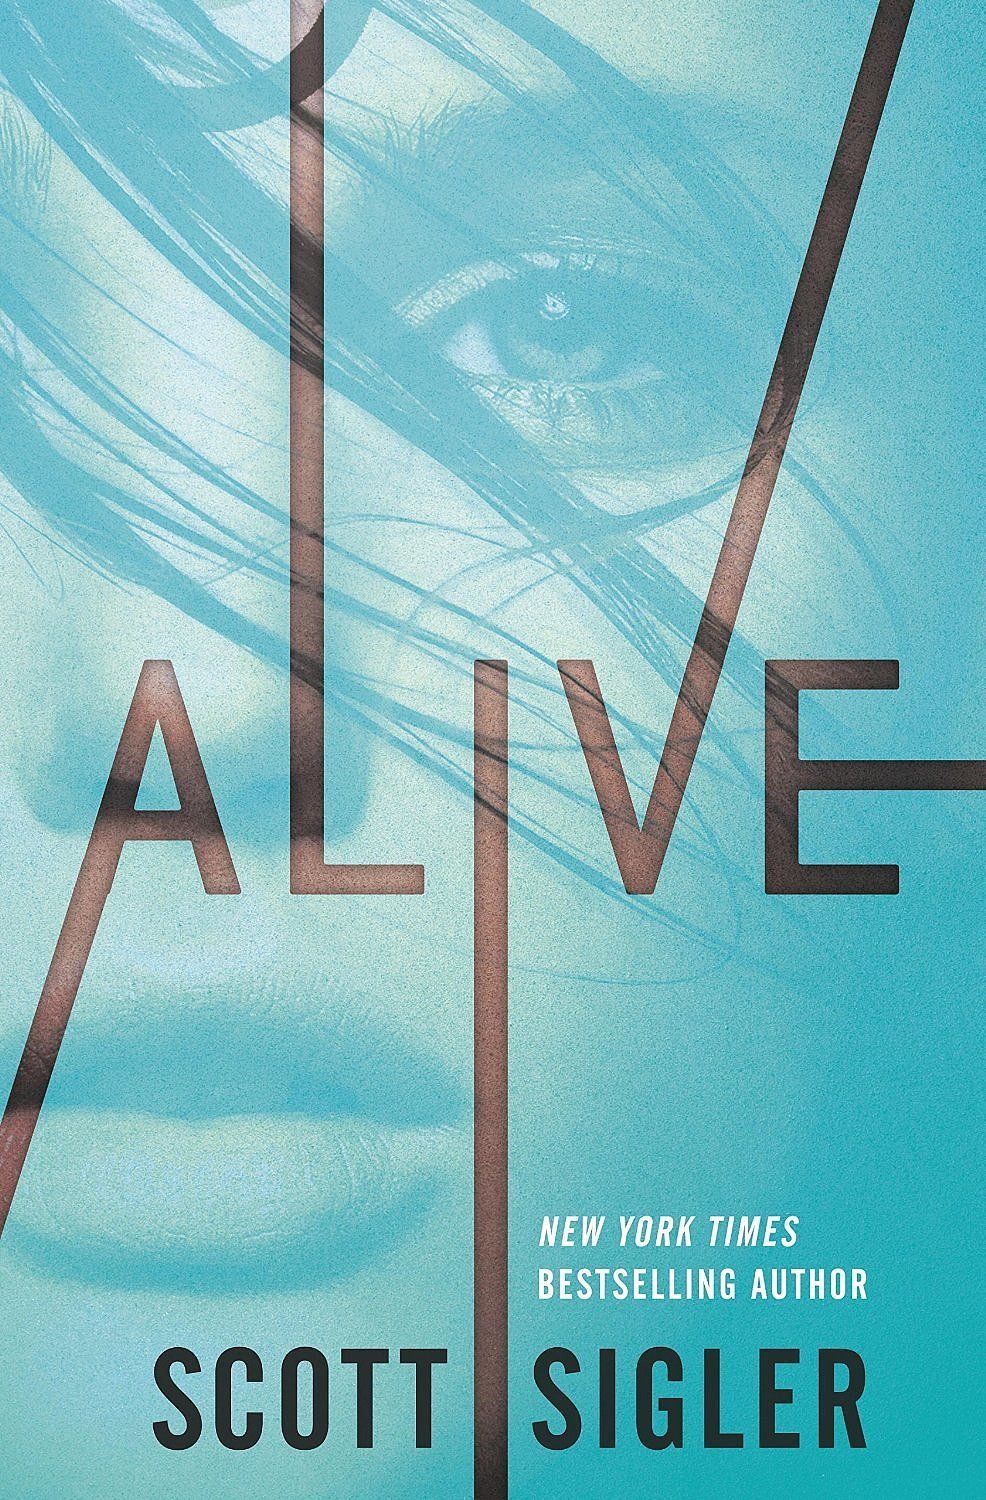 The Hunger Games fans will appreciate Alive: Book One of the Generations Trilogy by Scott Sigler, which follows a group of teens who wake up in a hallway not knowing who they are or why they're there. Out July 14